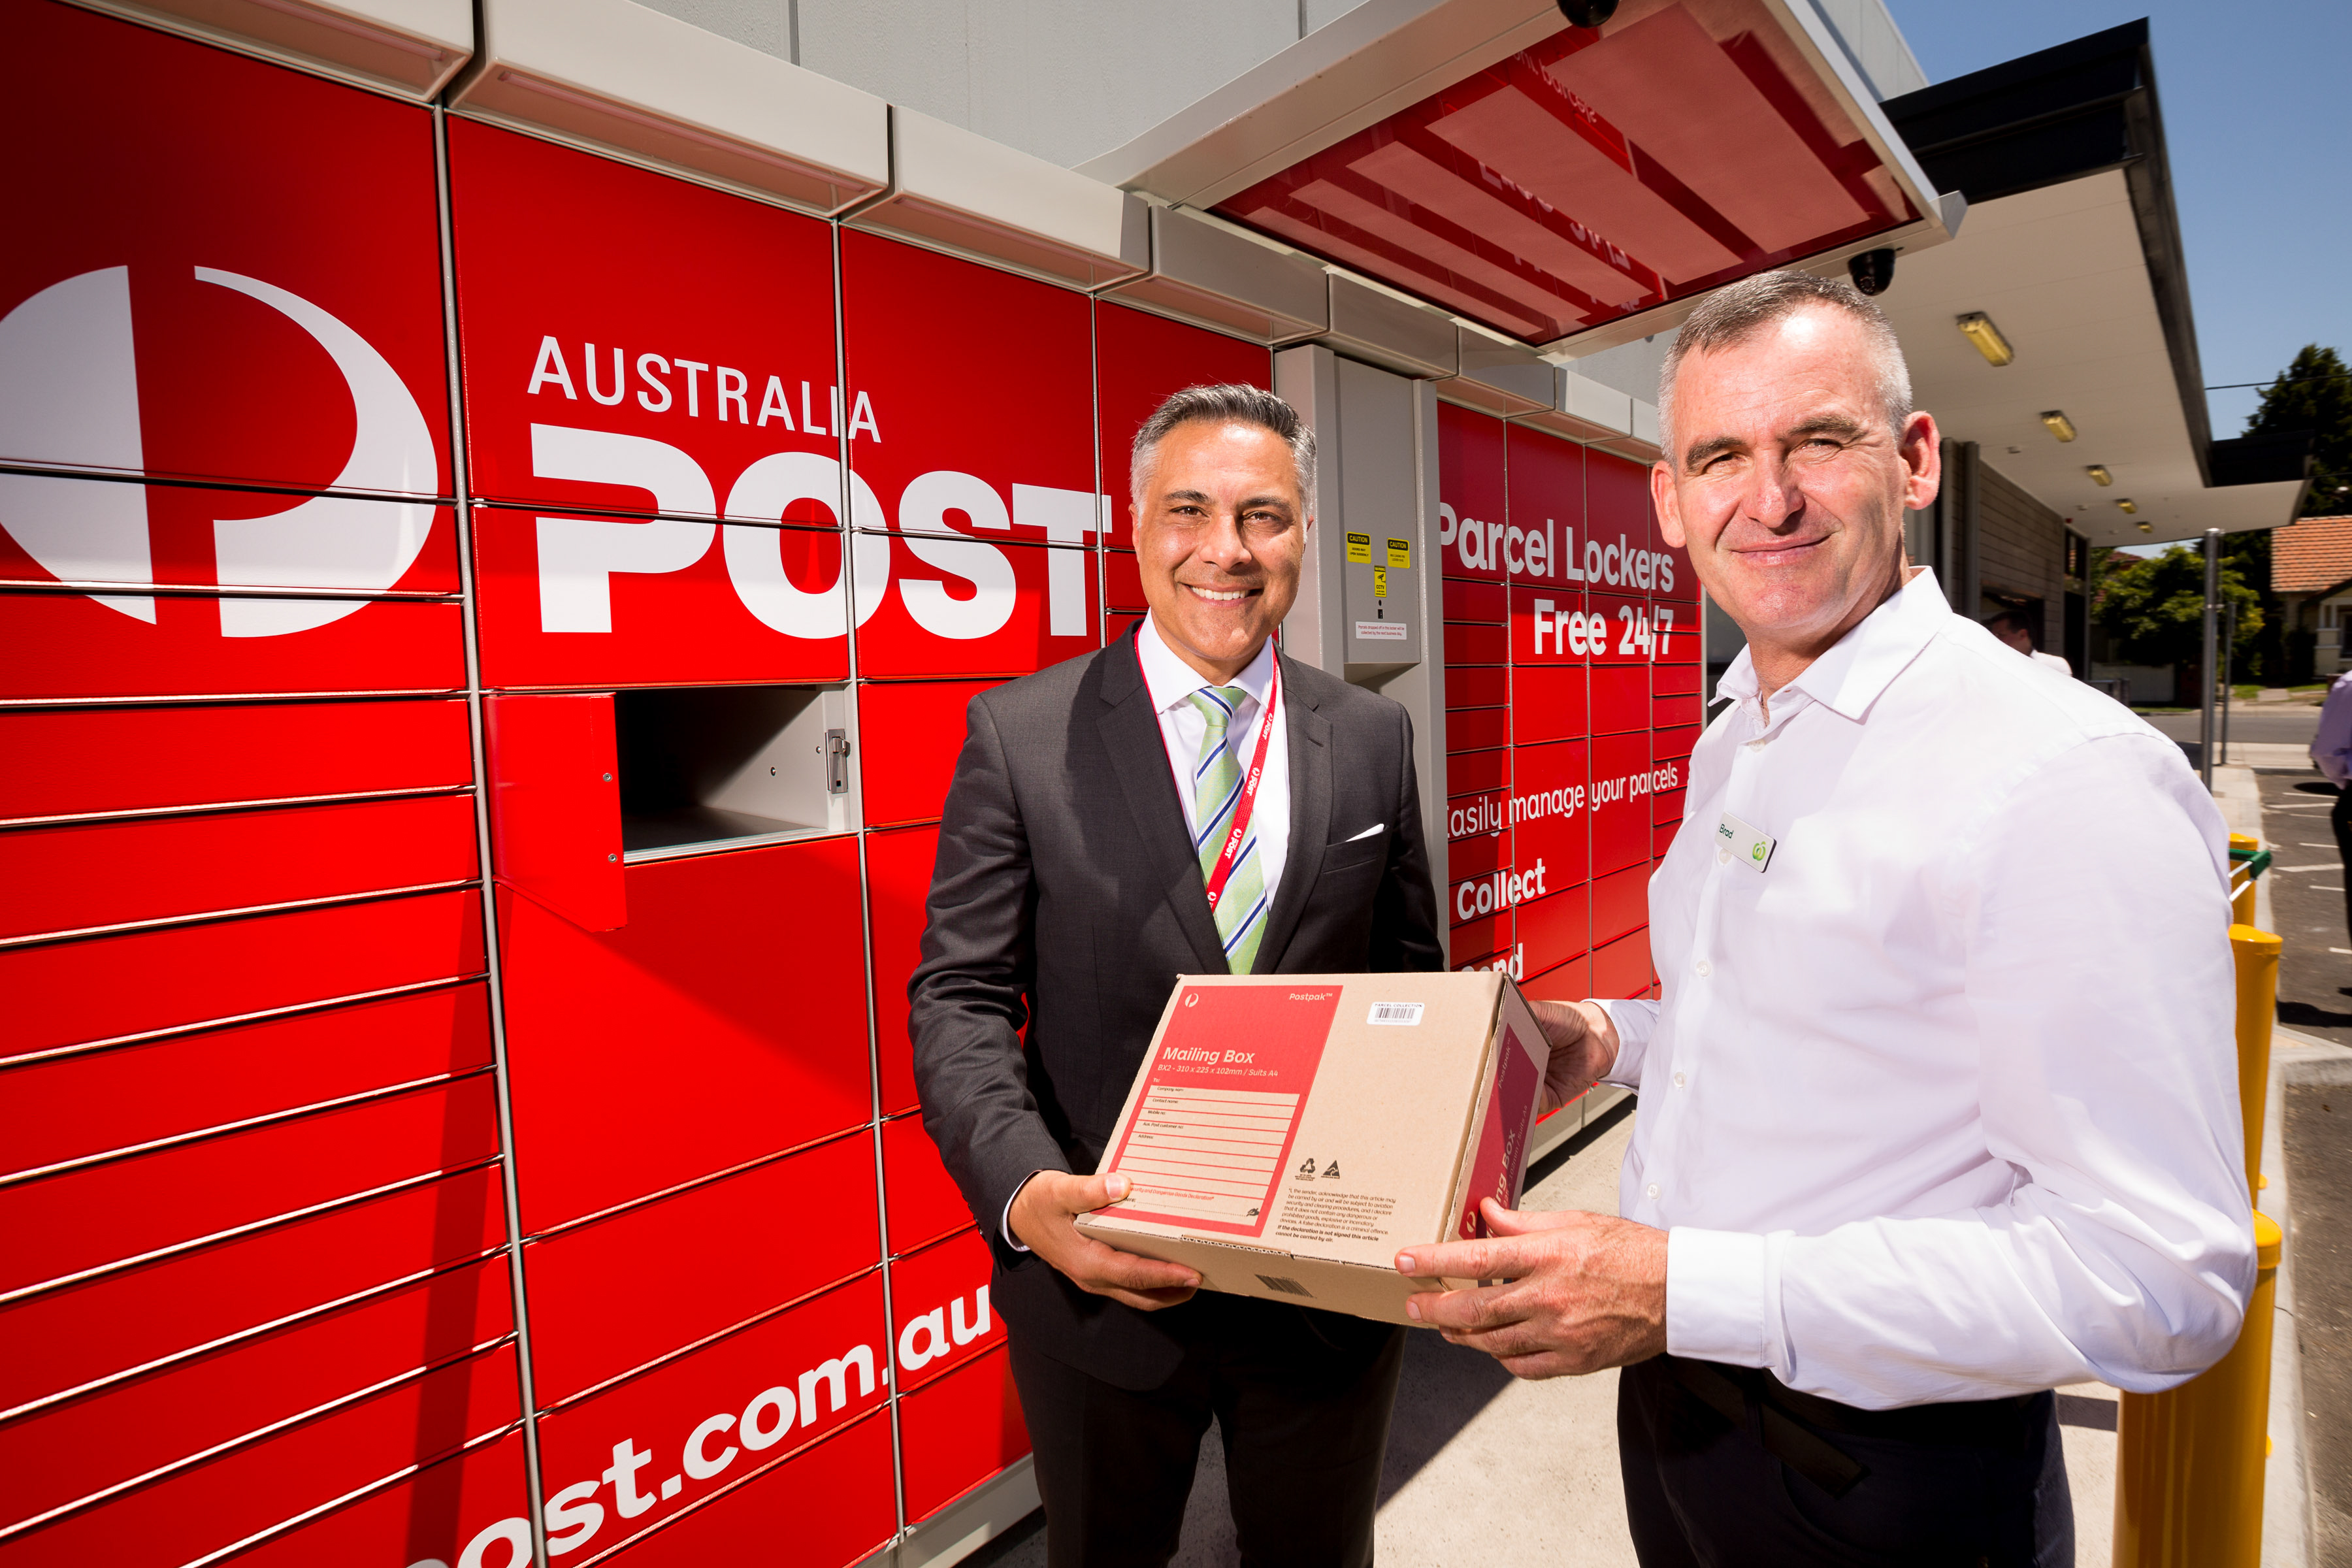 Australia Post installing parcel lockers in Woolworths stores